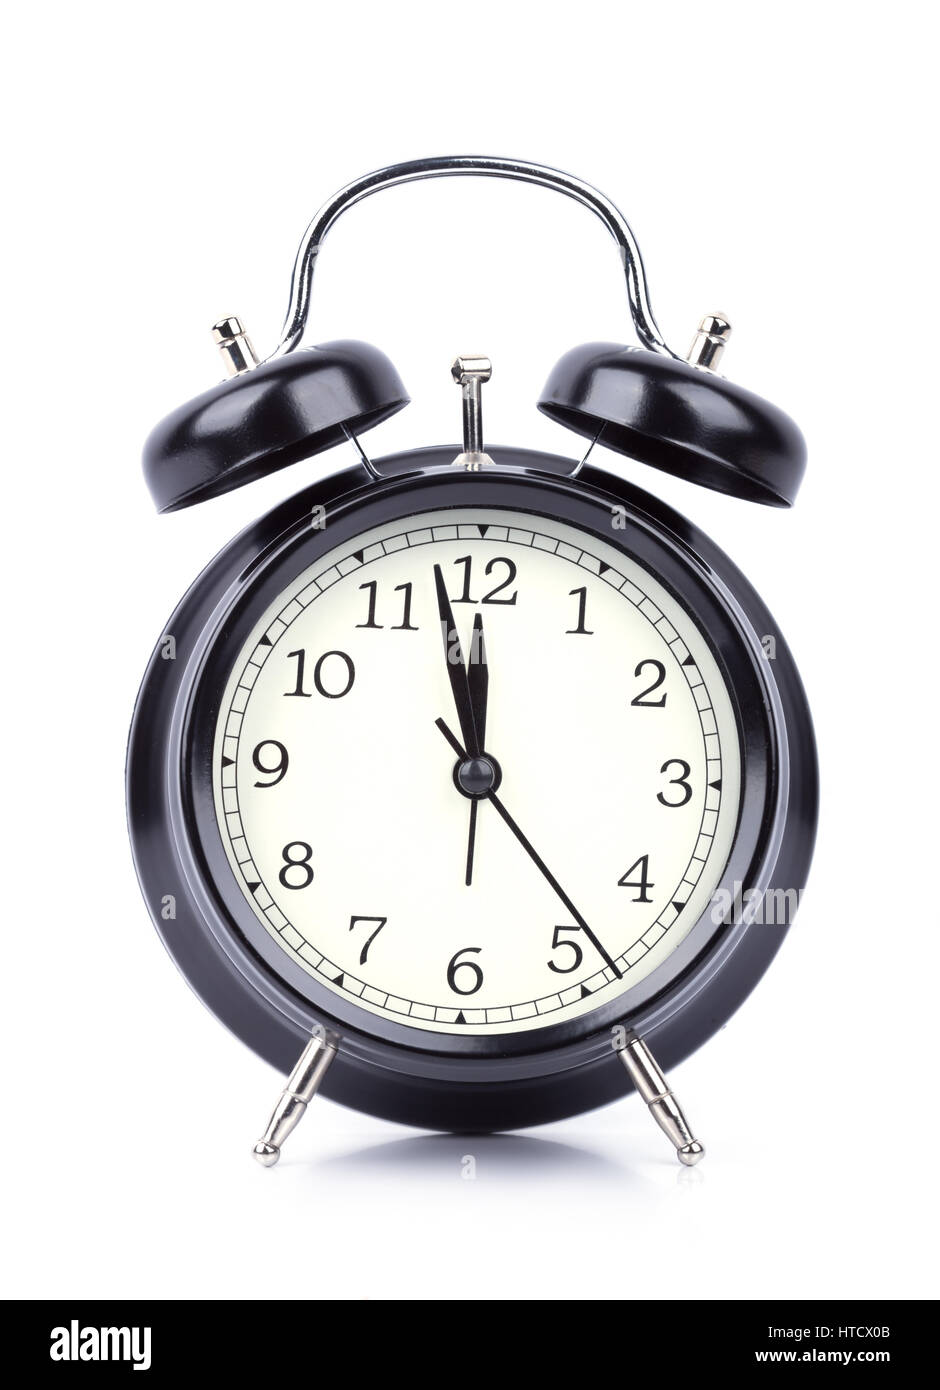 12 O Clock Stock Photos Amp 12 O Clock Stock Images Alamy